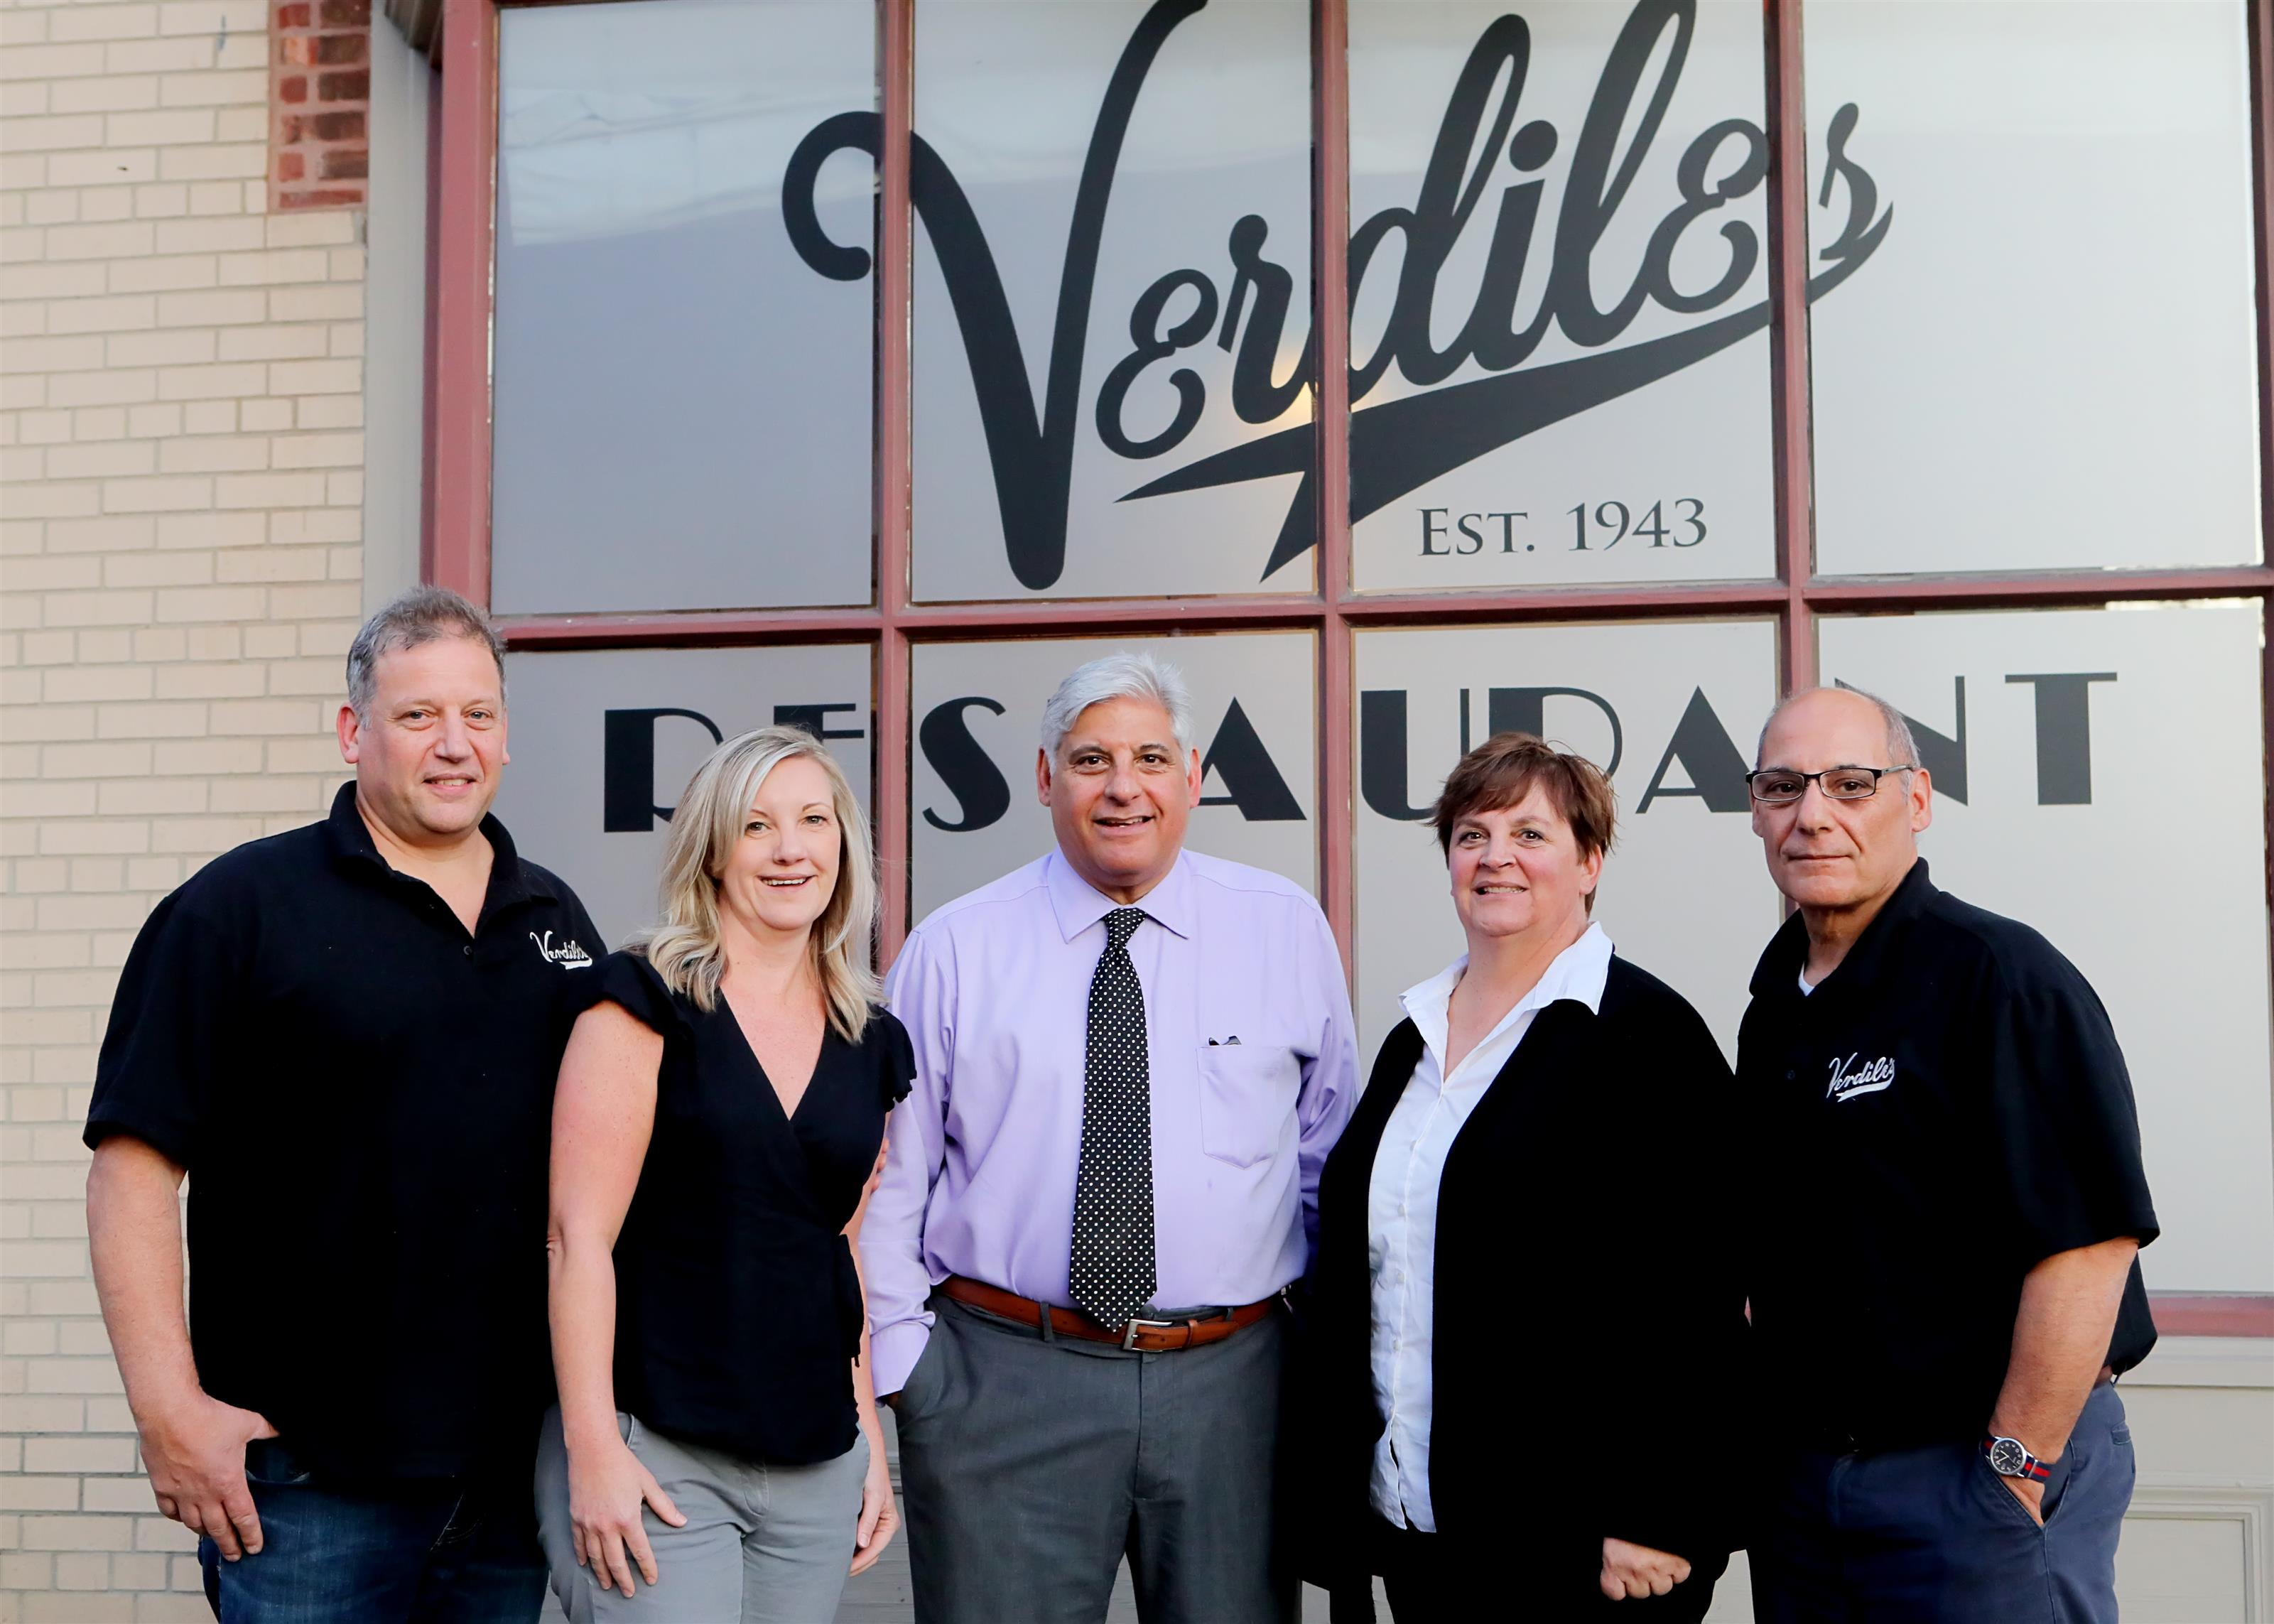 5 people in front of Verdiles restuarant